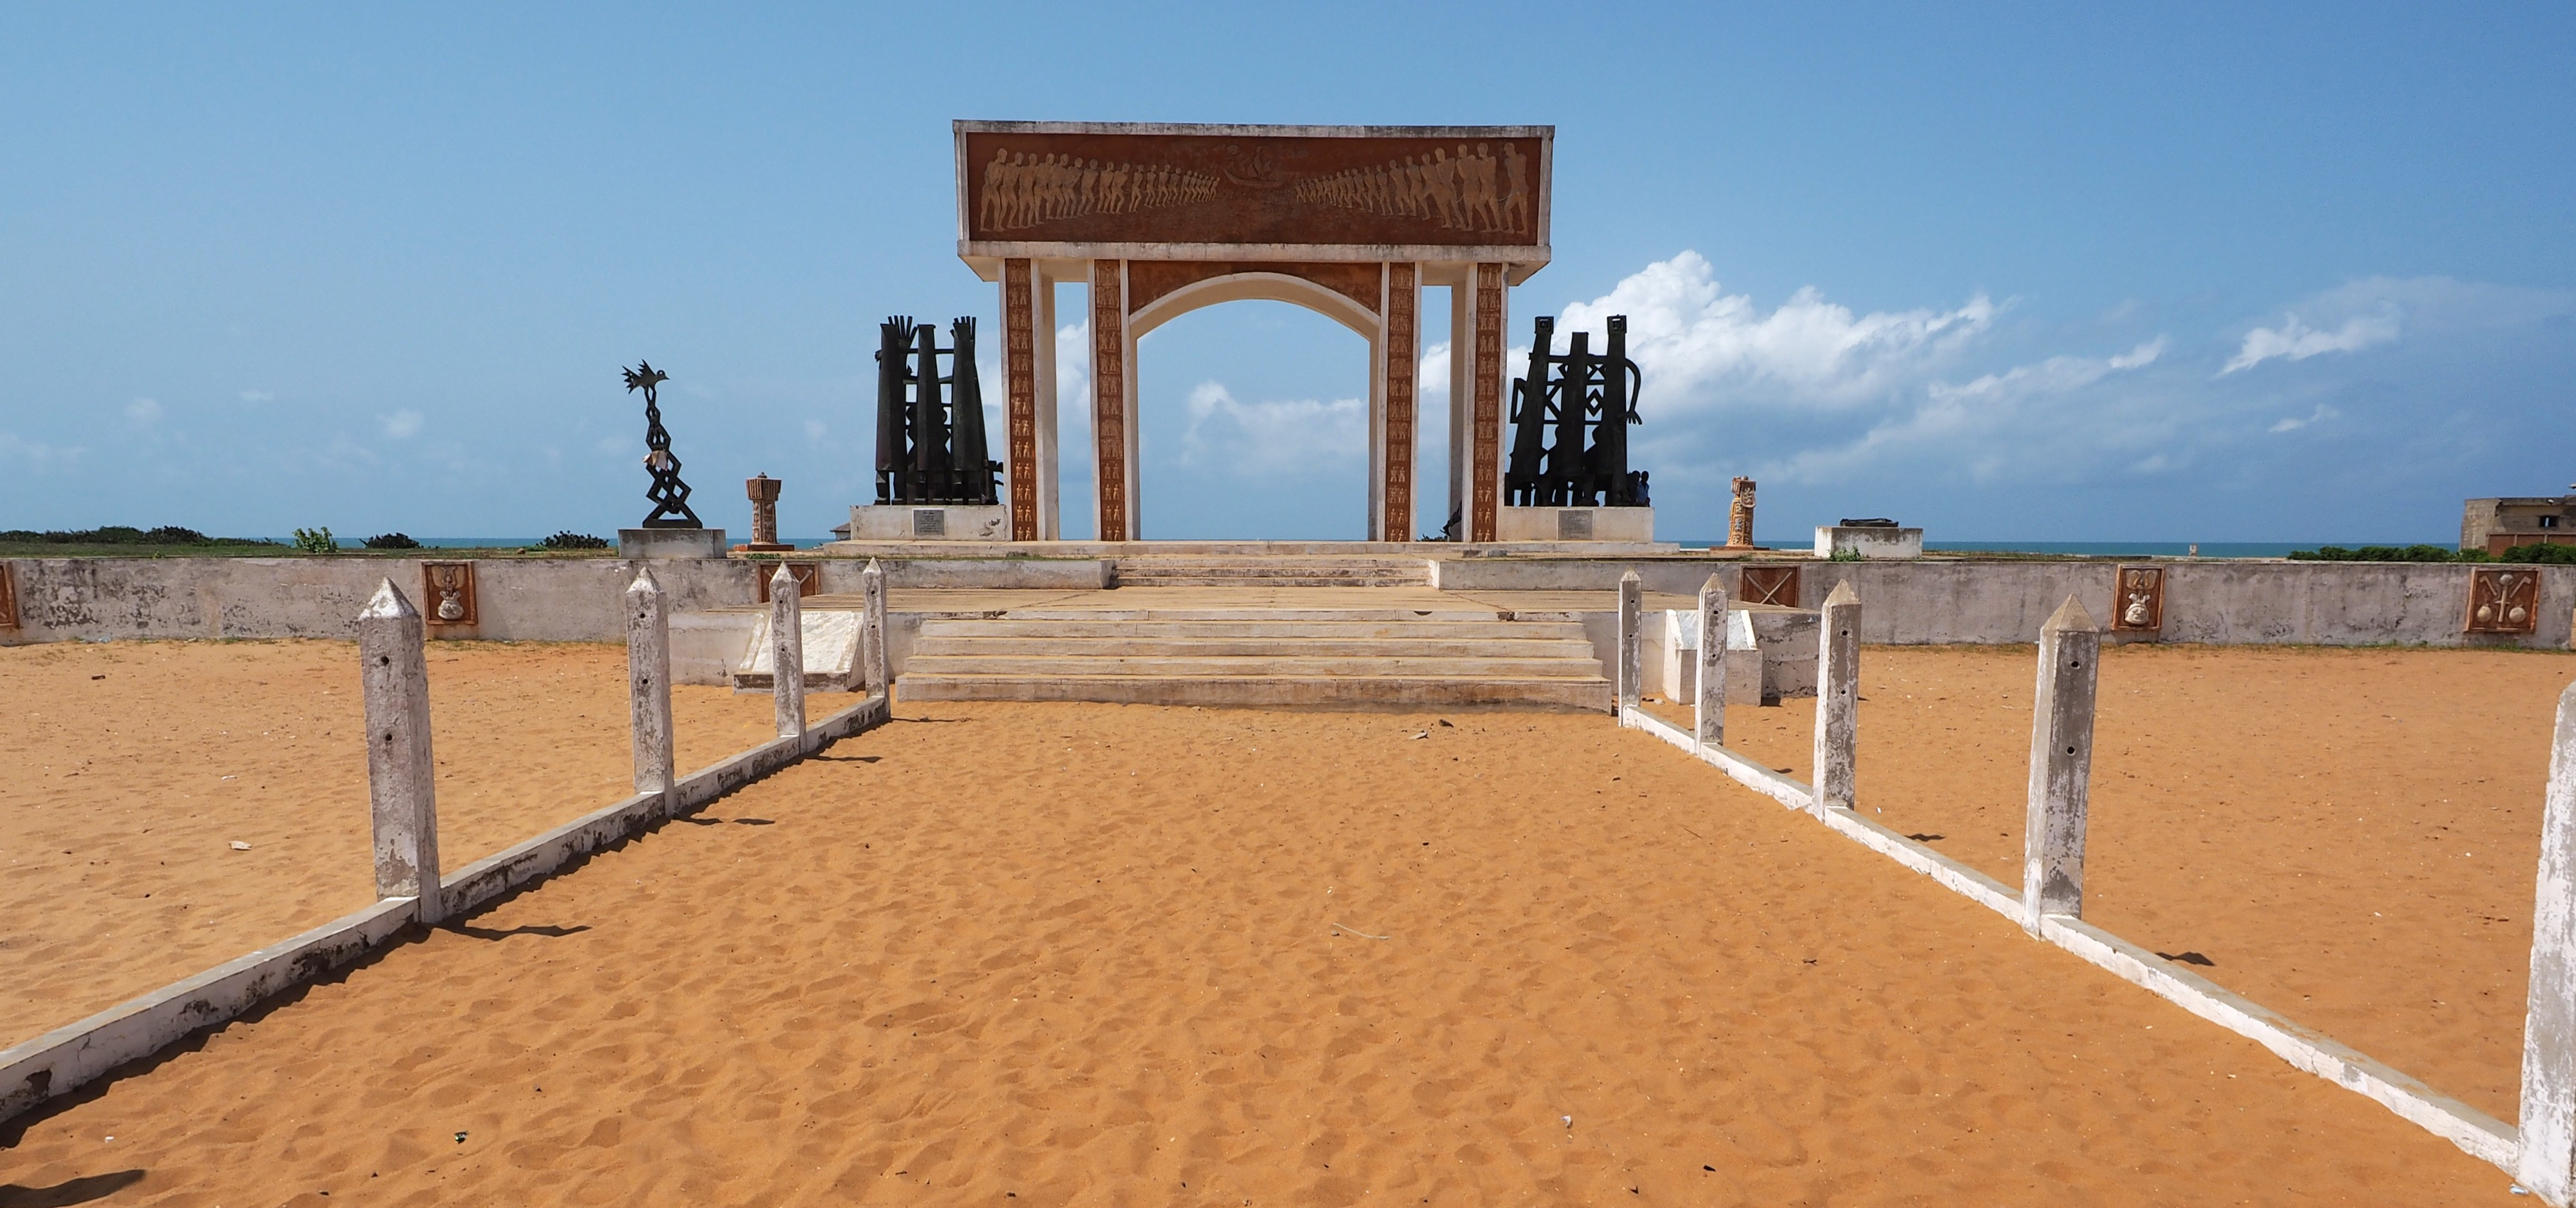 The Slaving Port of Ouidah and Monumental Discourse around the